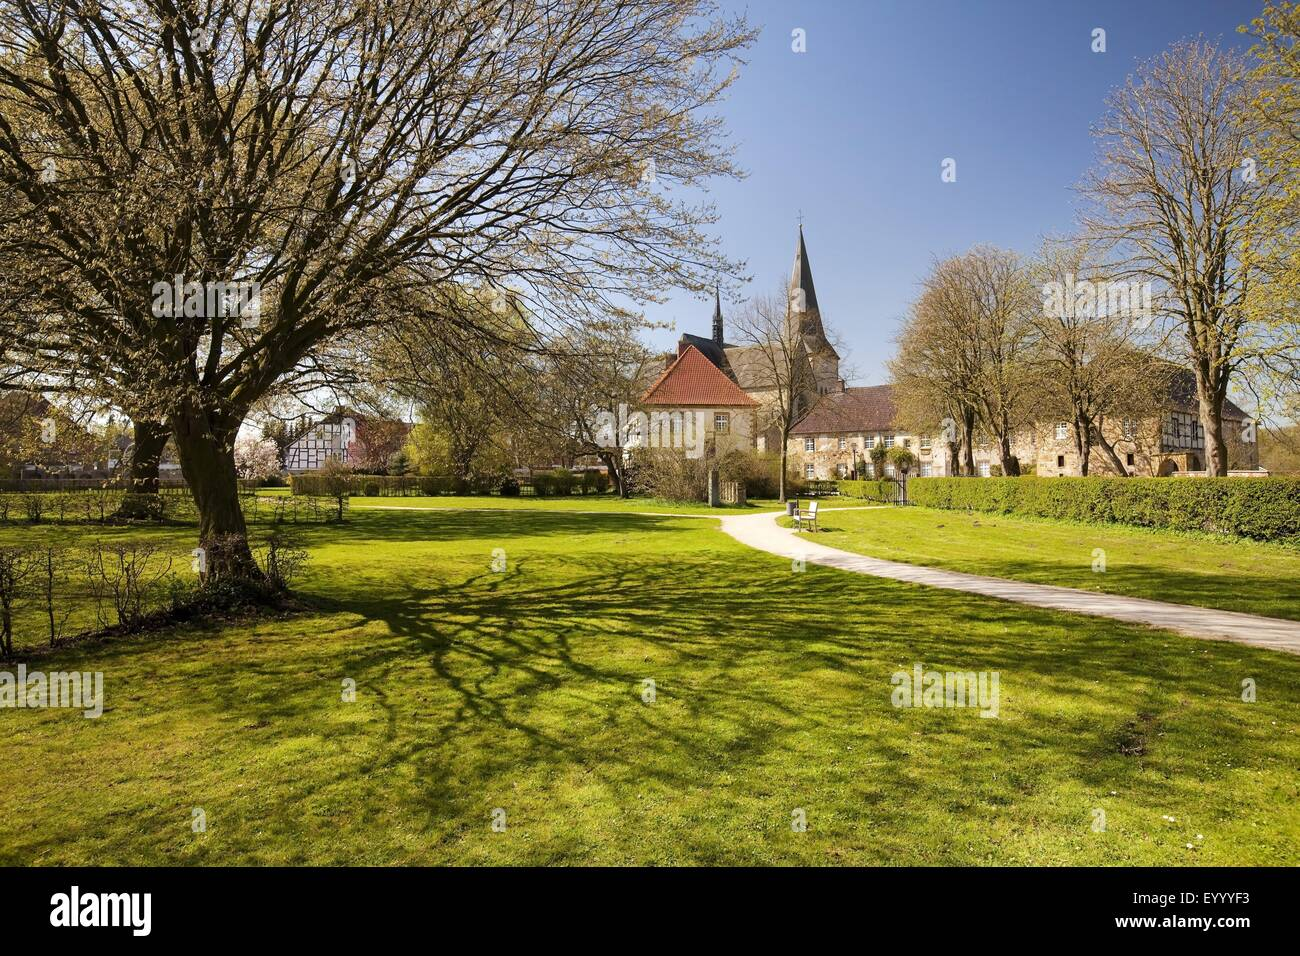 Cloister of the Order of Saint Benedict in Herzebrock with minster Saint Christina, Germany, North Rhine-Westphalia, - Stock Image